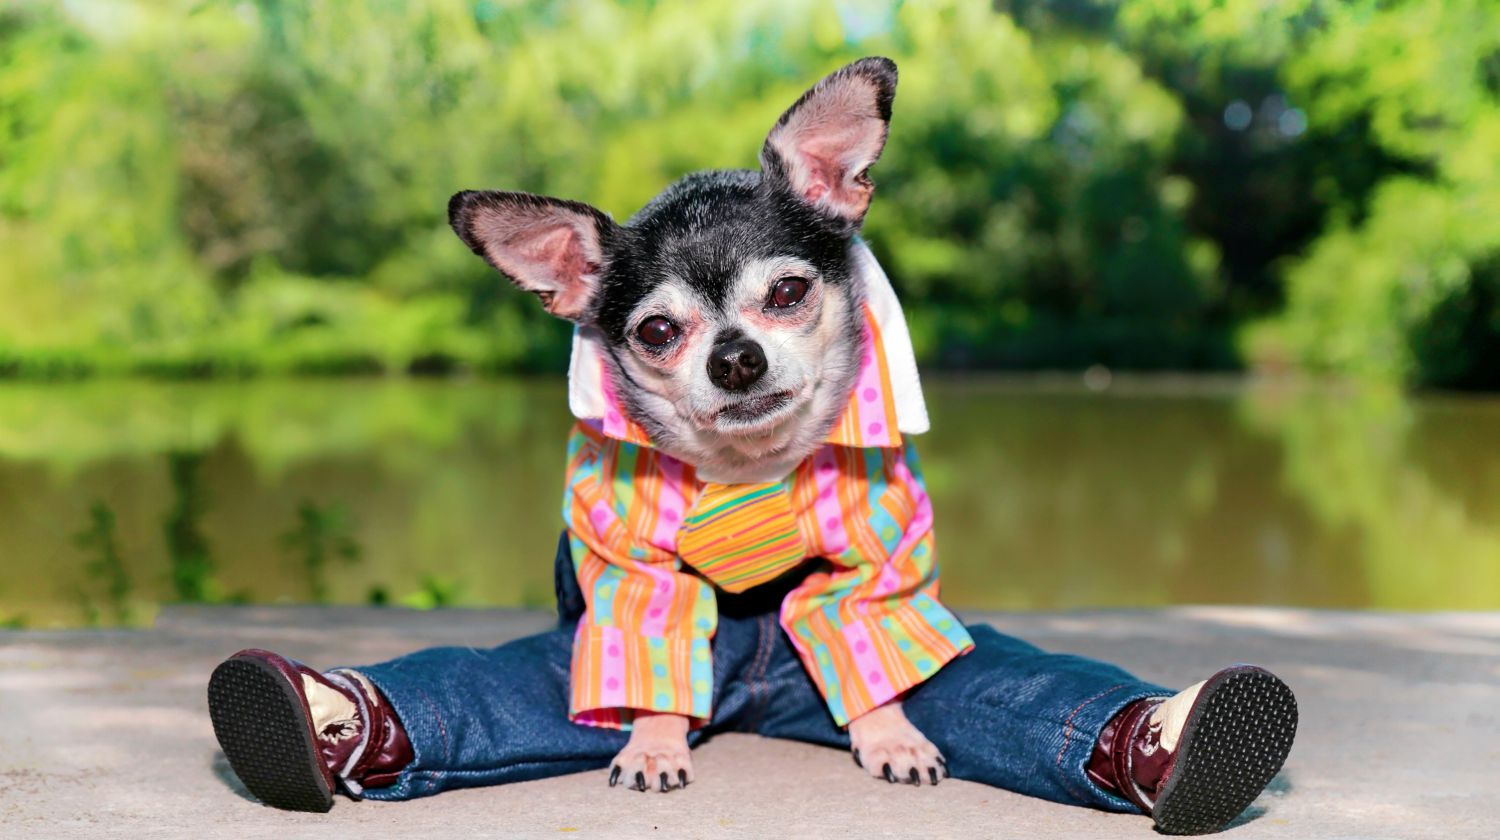 Diy Dog Clothes And Coats You Should Make Diy Projects